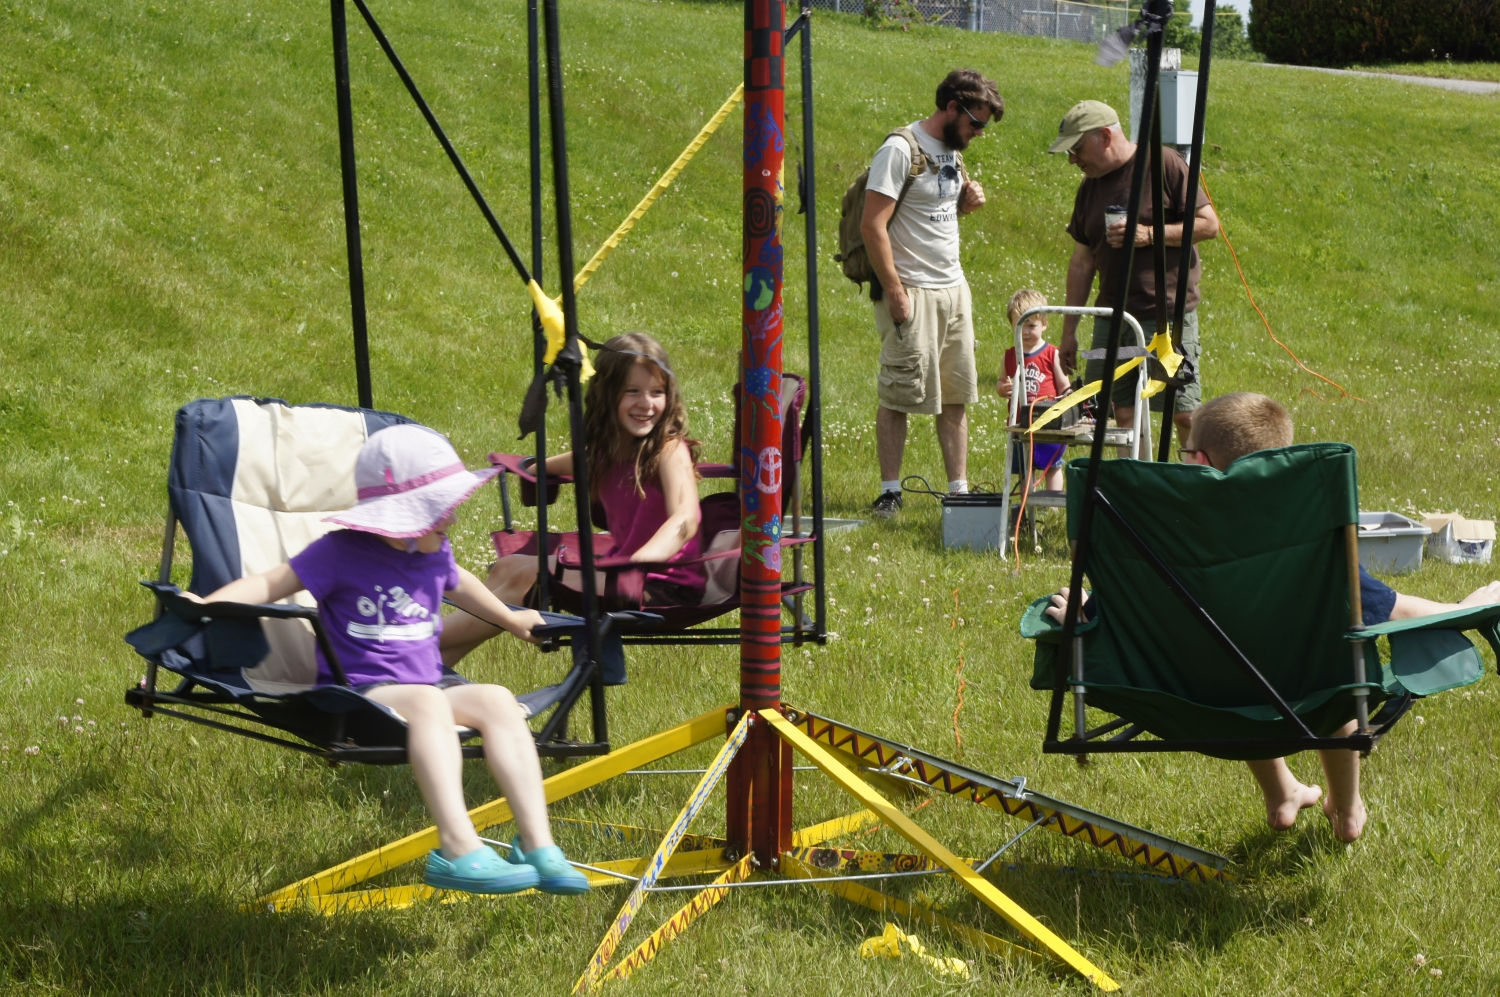 Introducing 2014 makers diy merry go round swing for How to build a swing set for adults